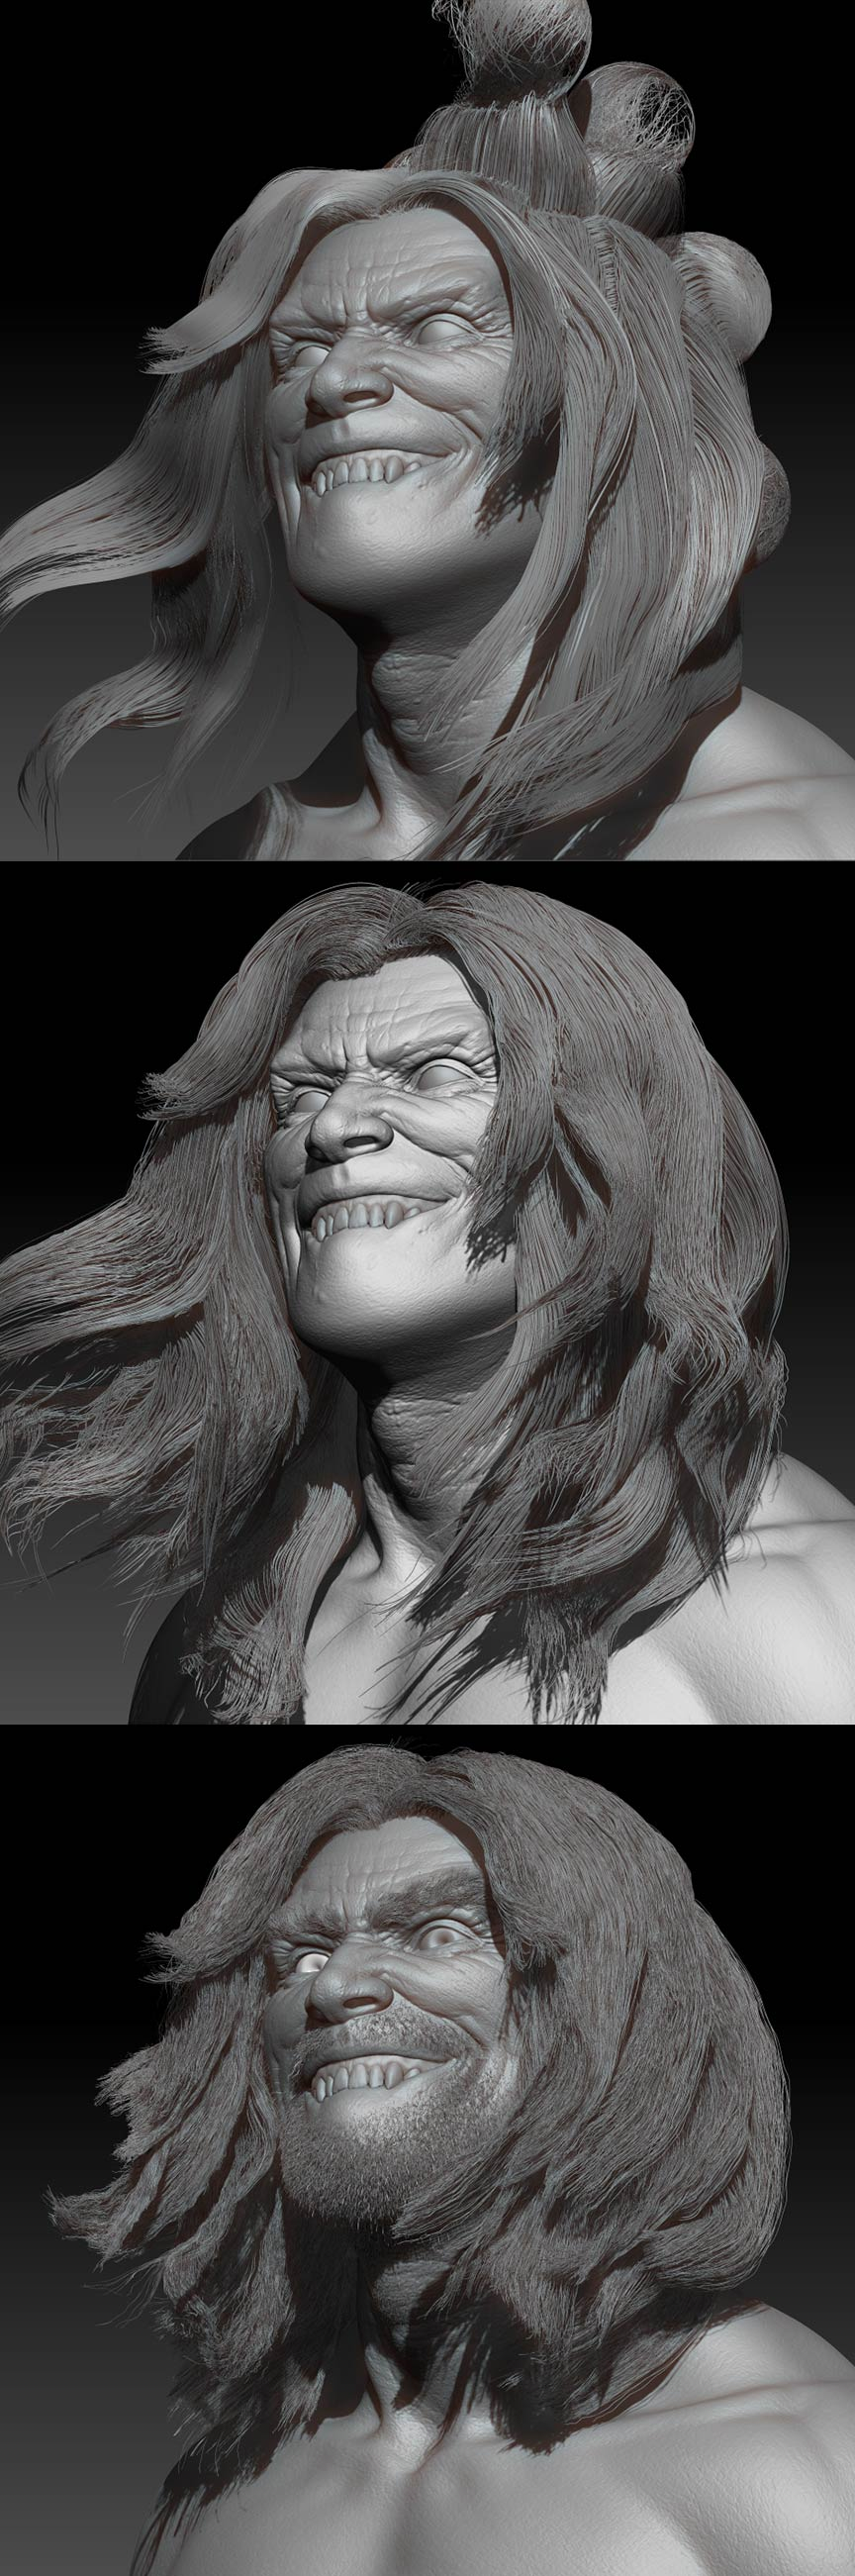 Zbrush_Character_Hair-Sculpt_Process